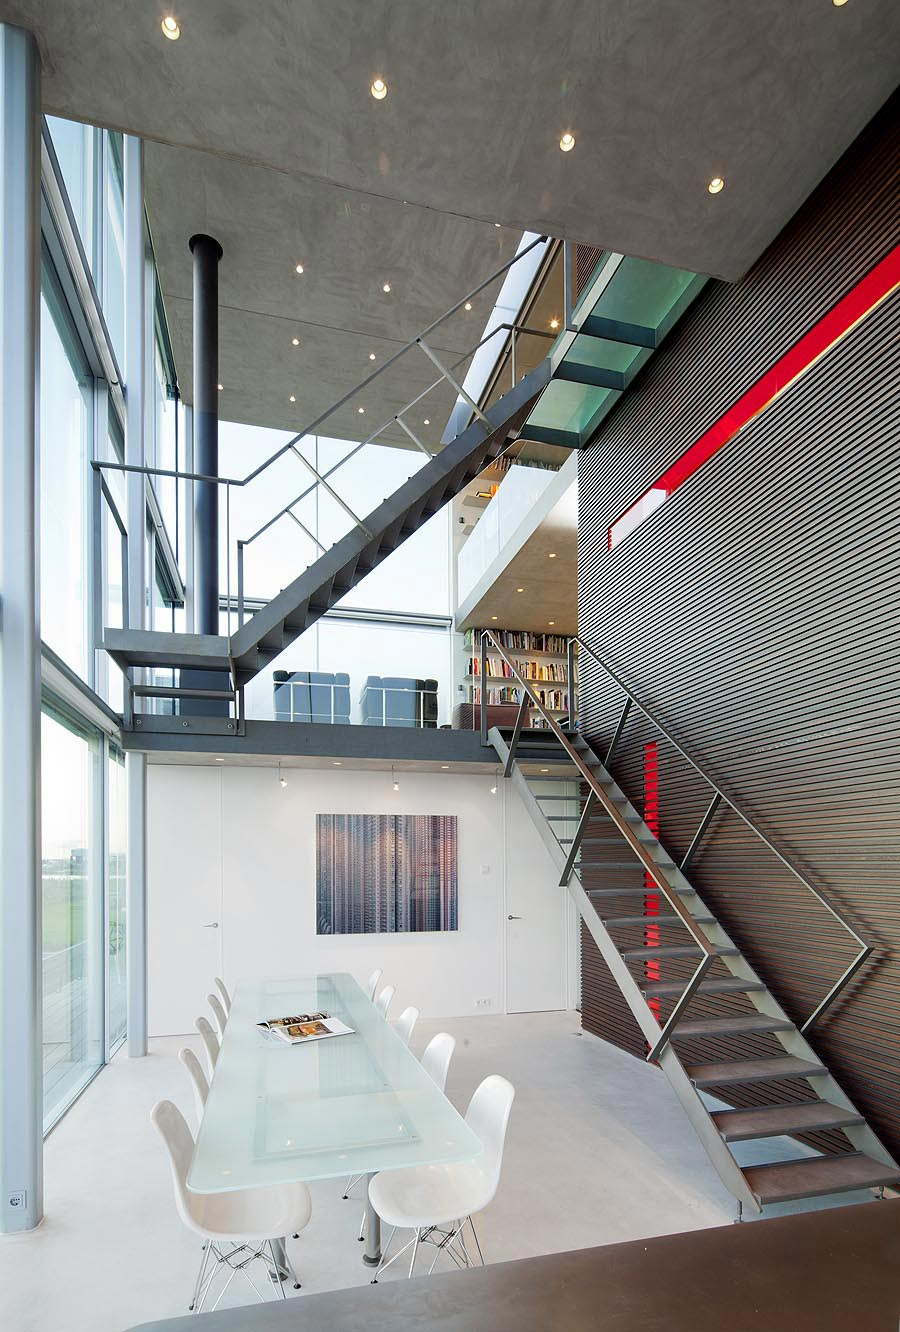 Dining Table, Stairs, Rieteiland House in Amsterdam by Hans van Heeswijk Architects